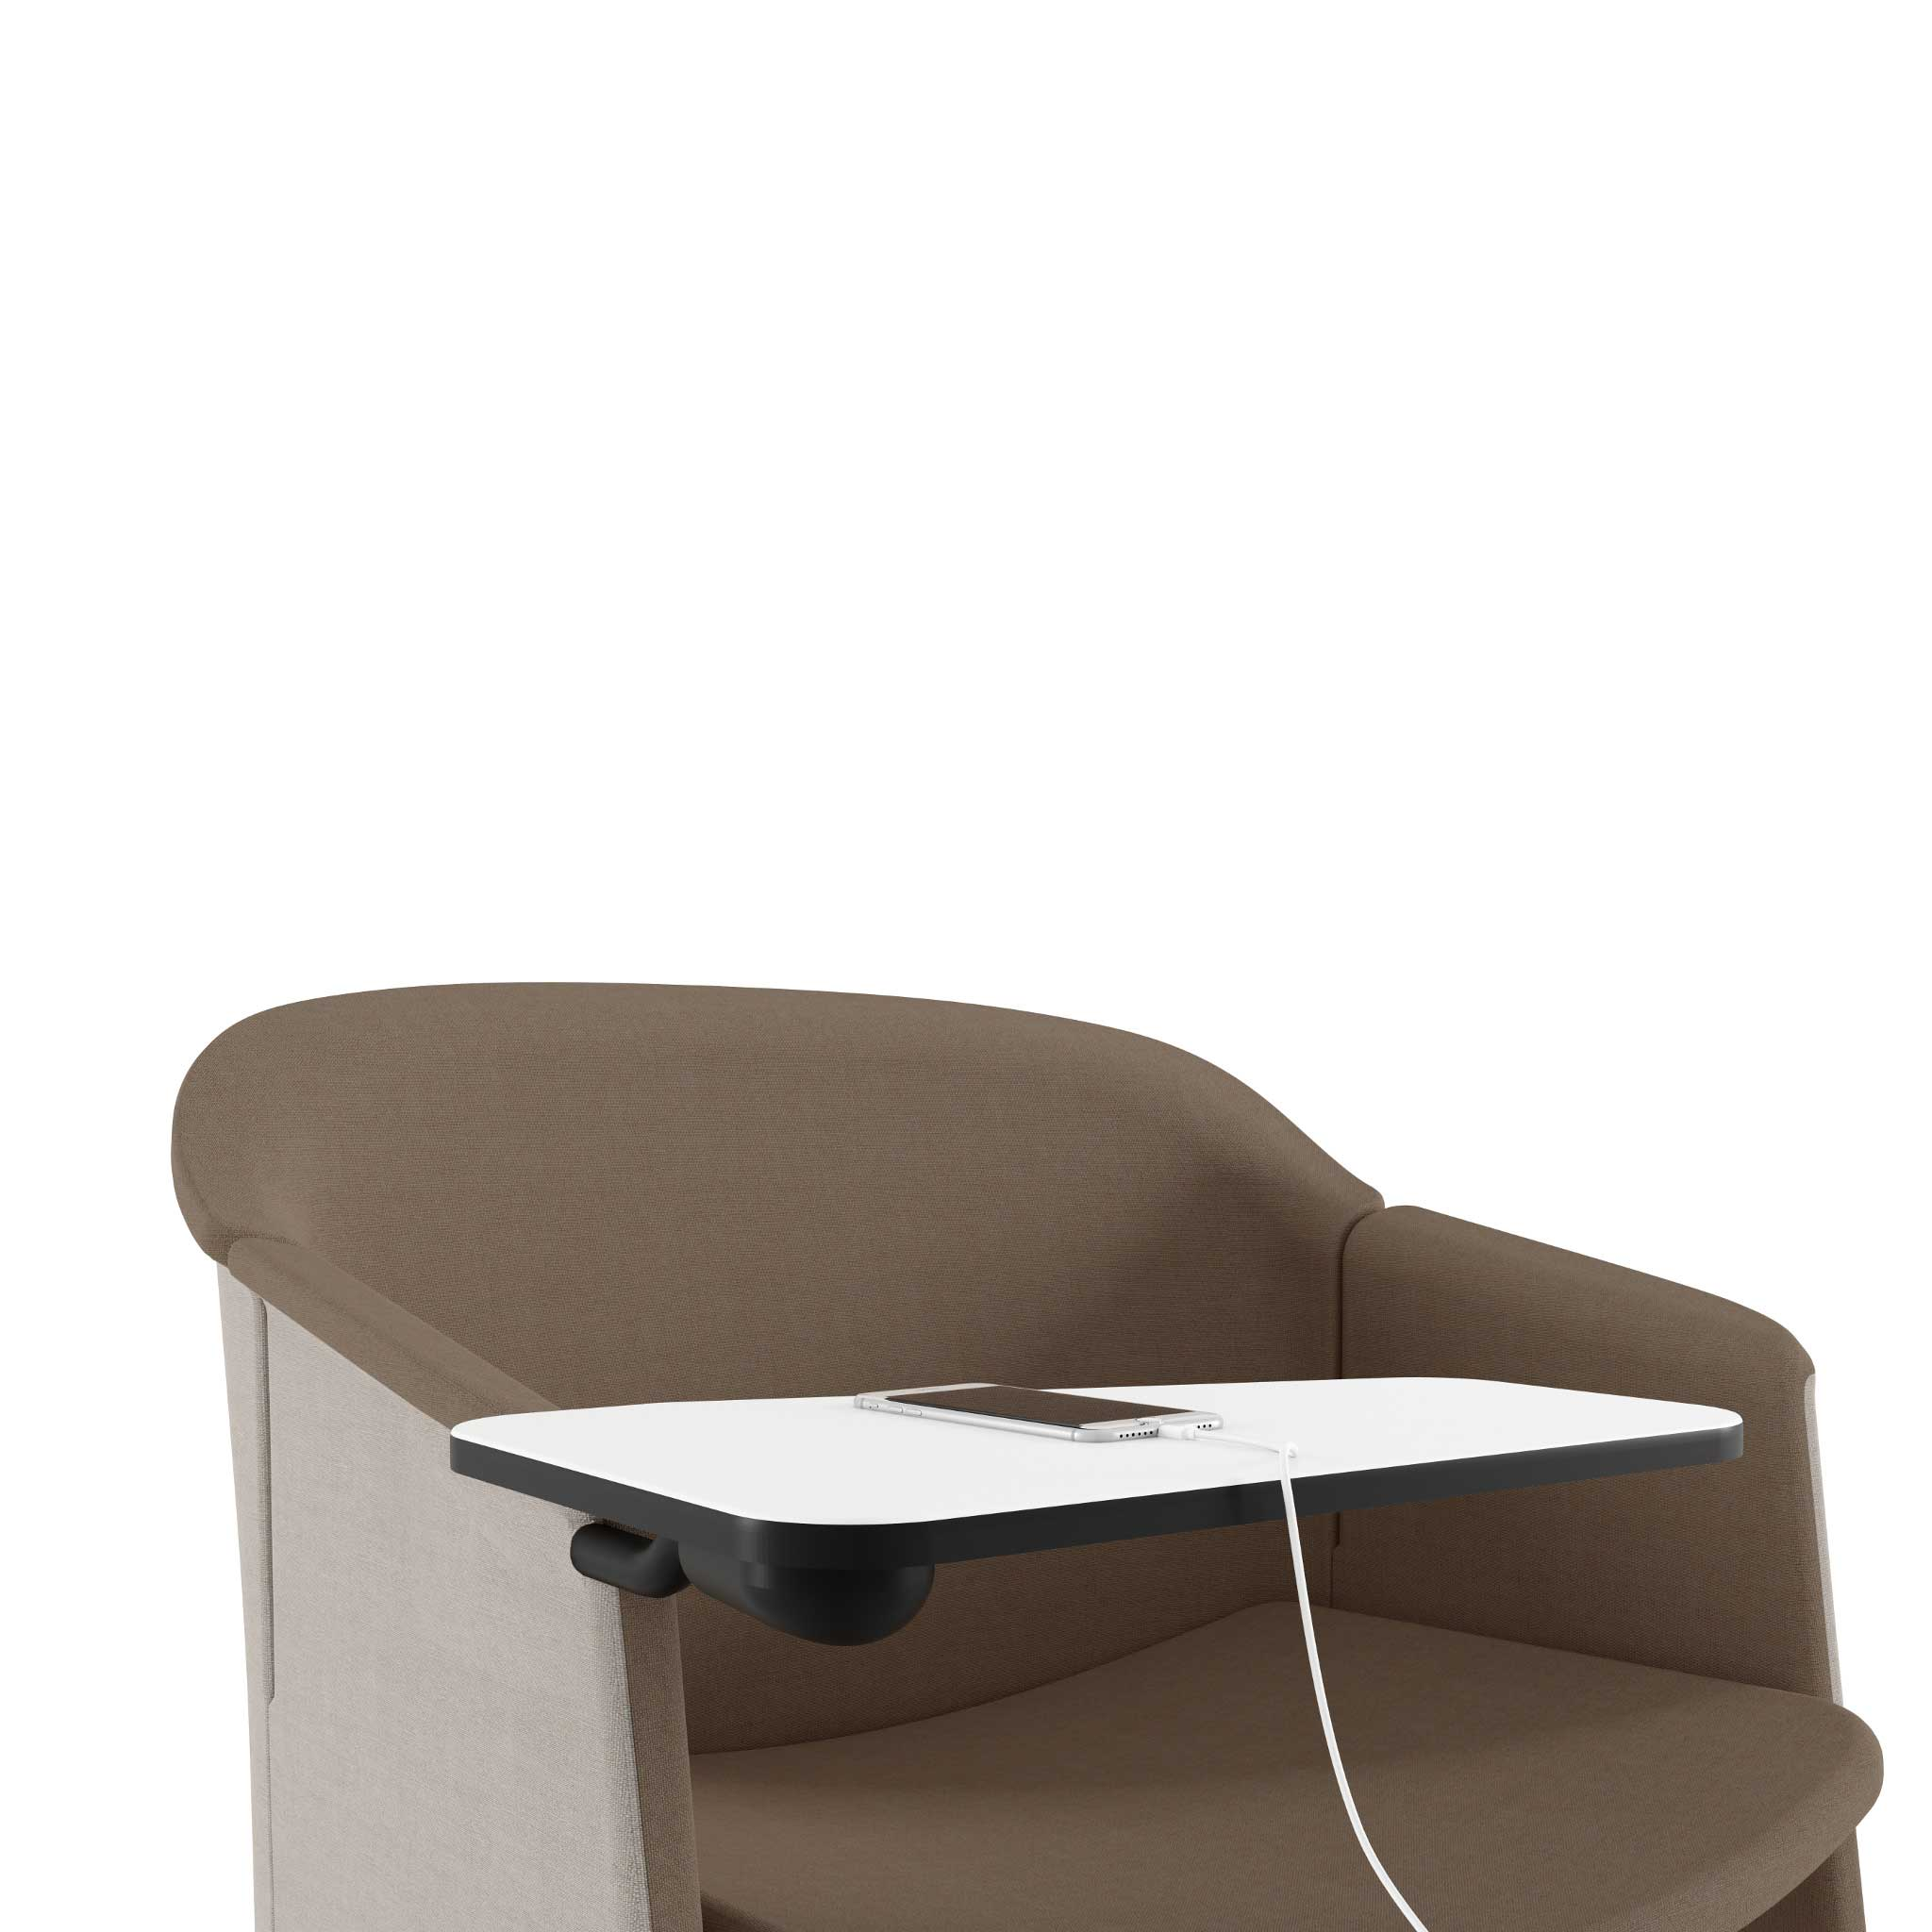 07S_Estel_Comfort&Relax_Office-Chair_Pochette